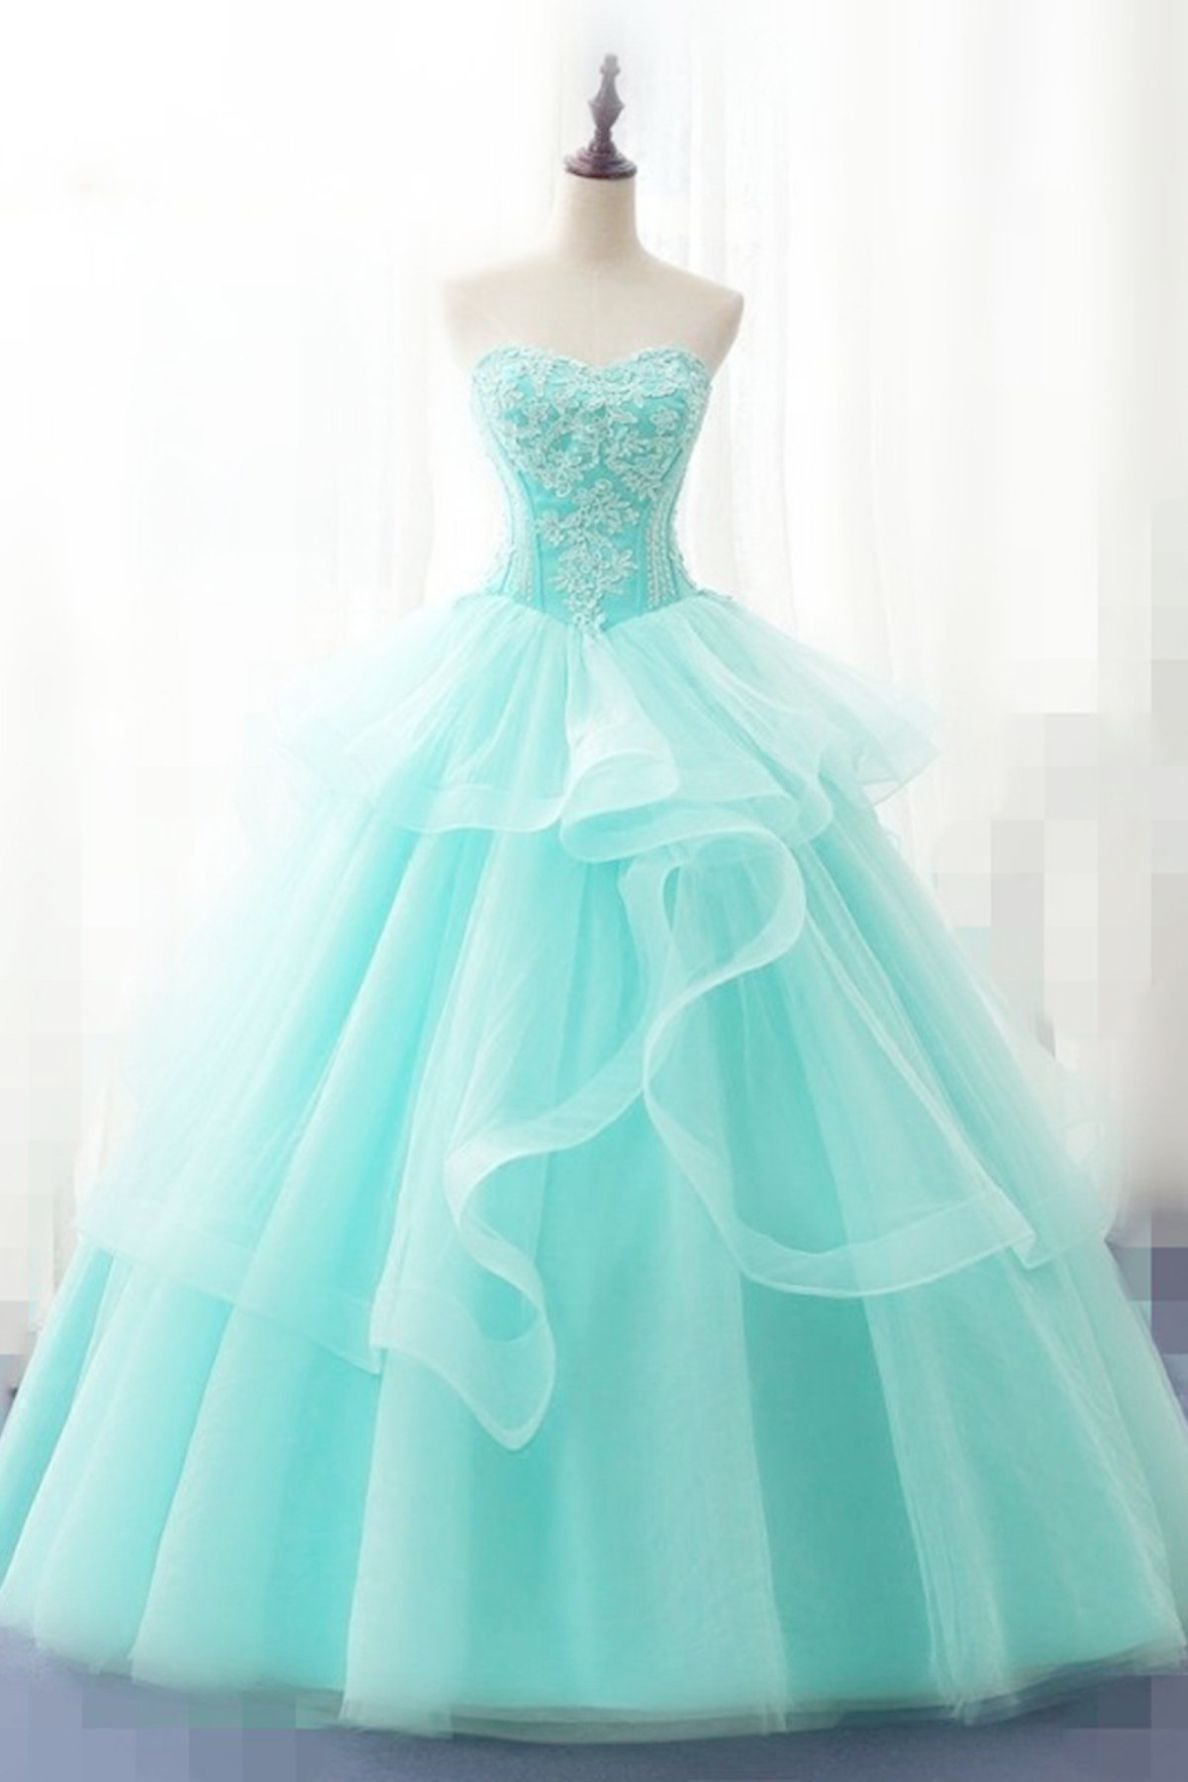 Winter Day Dresses 2018 Uk Behind Next Winter Day Dresses Quince Dresses Strapless Prom Dresses Ball Dresses [ 1782 x 1188 Pixel ]